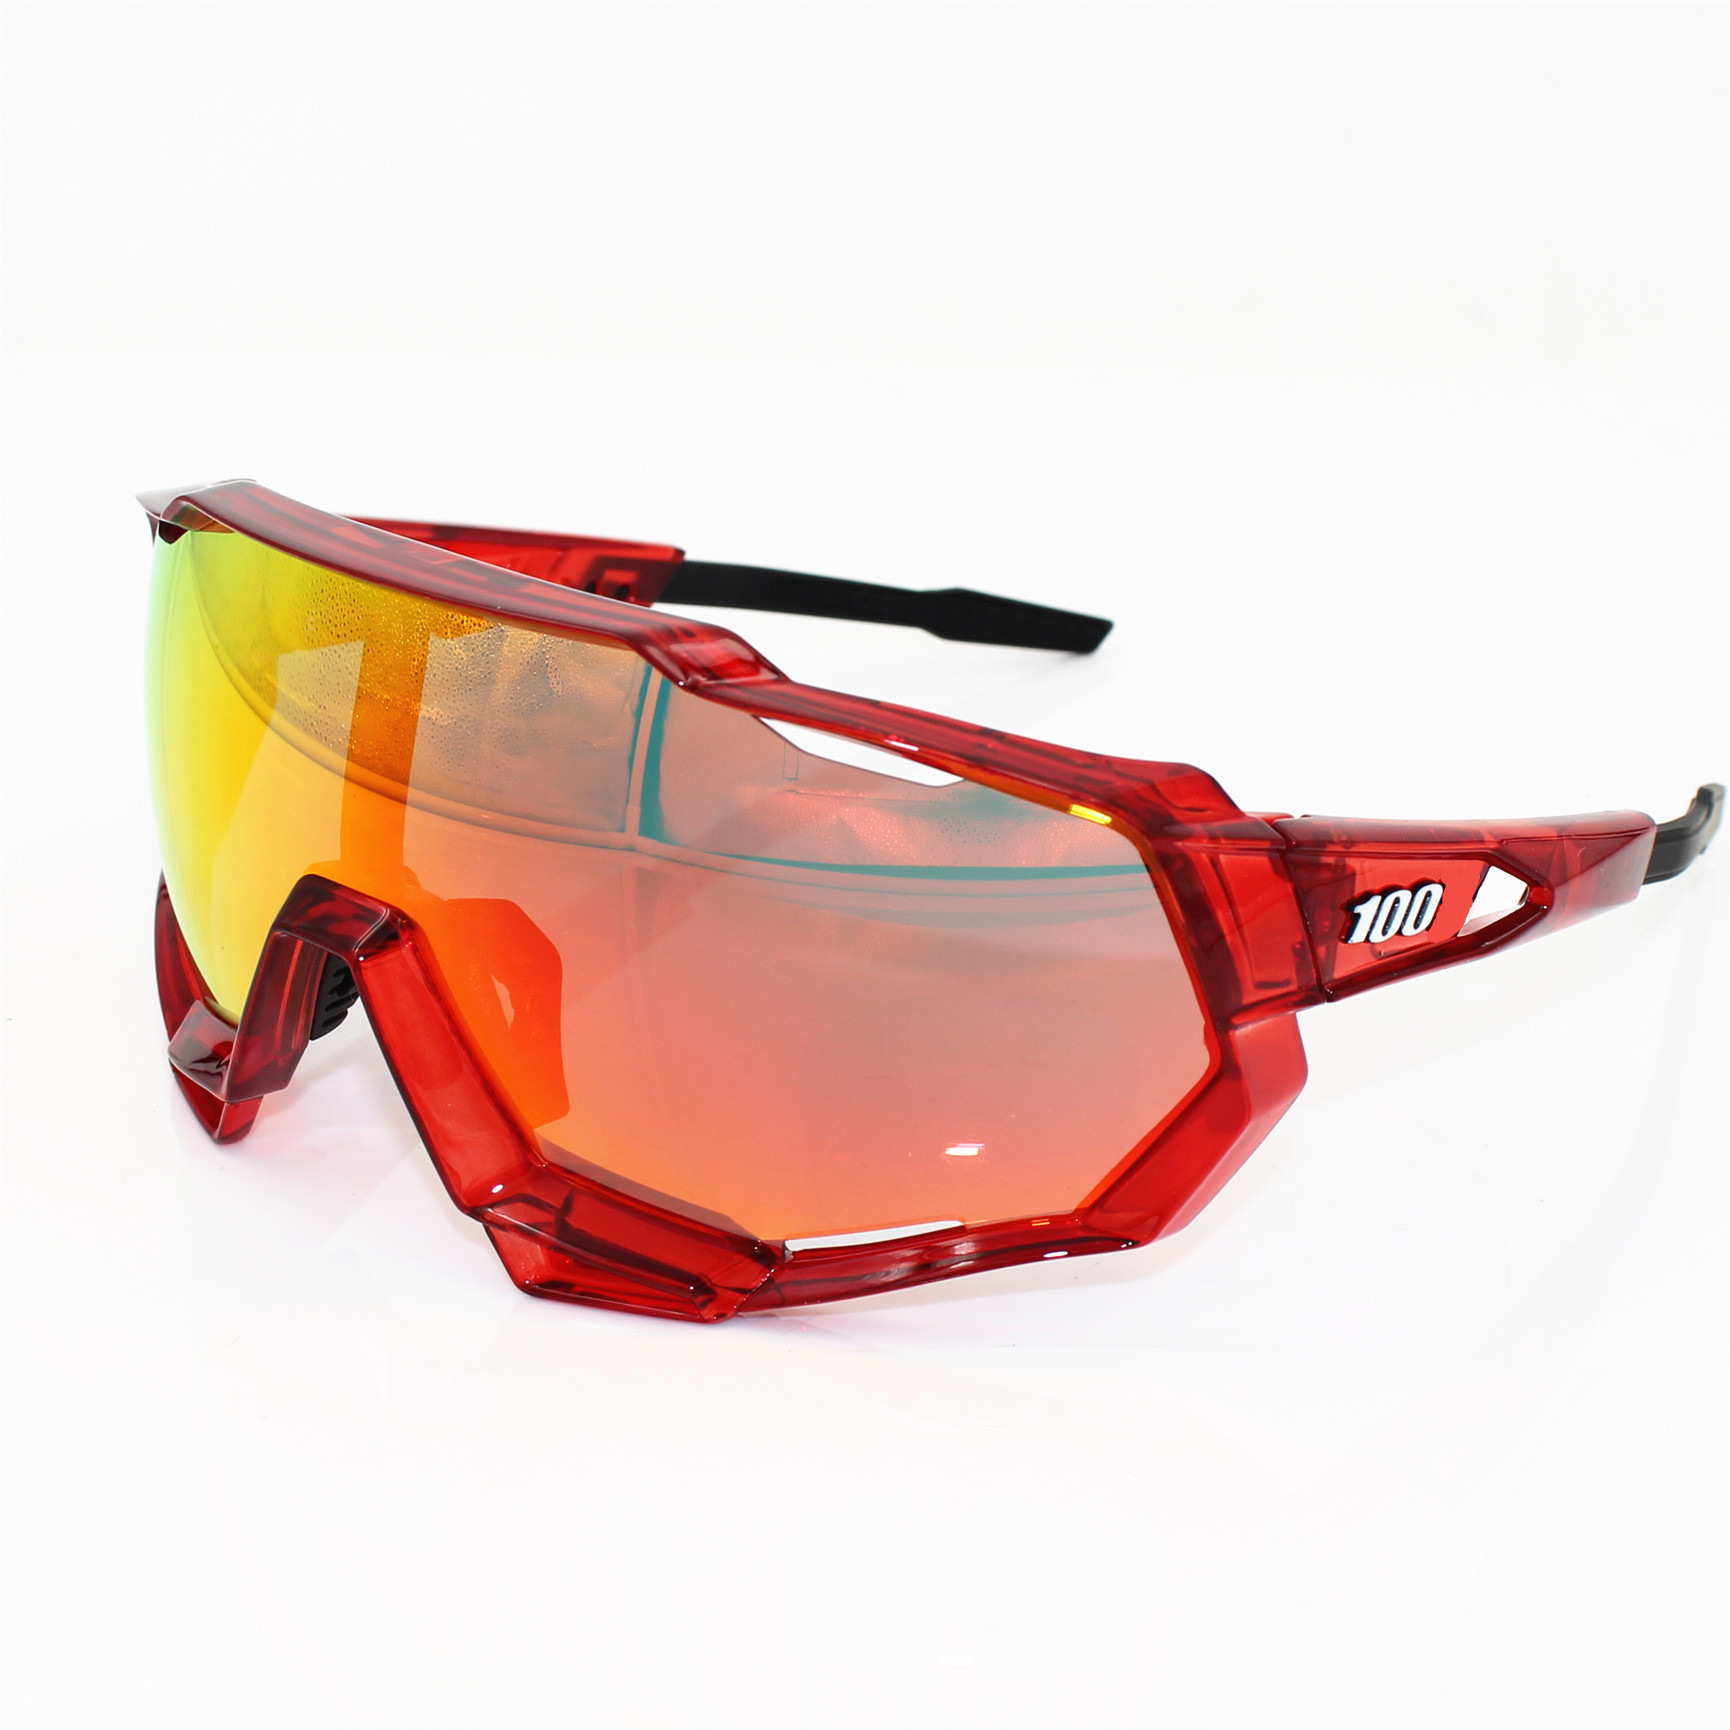 Sagan Professional Cycling Glasses Female Polarized Outdoor Sand-Proof Sports Mountain Bike 3 Cycling Mirror Equipment 6